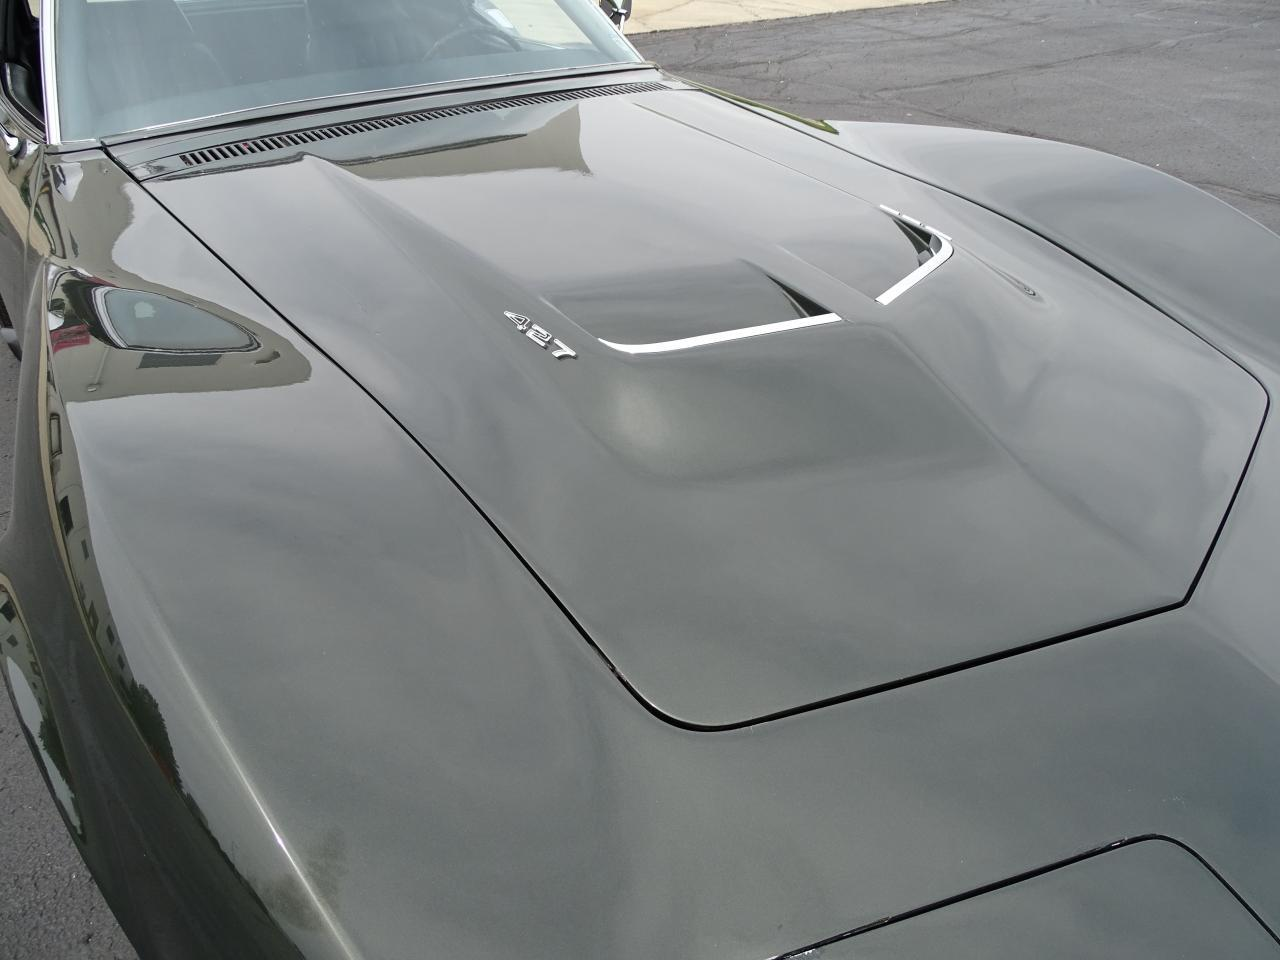 Large Picture of 1969 Chevrolet Corvette located in Indianapolis Indiana - $32,595.00 Offered by Gateway Classic Cars - Indianapolis - L6RX